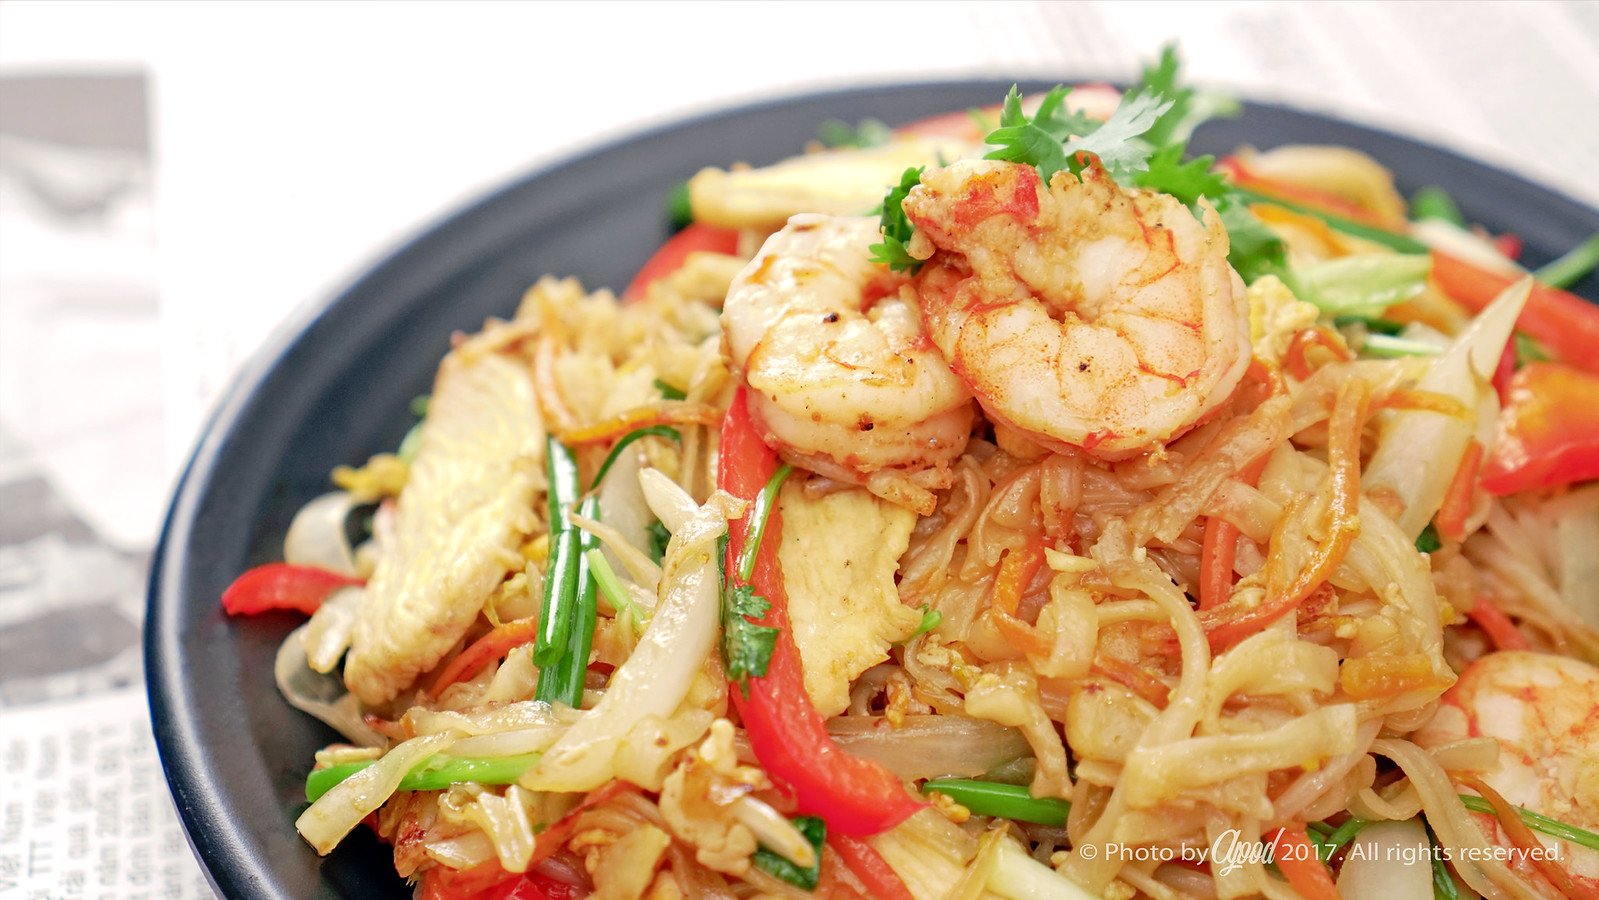 PAD THAI – THAILAND SOUR AND SWEET STIR FRIED RICE NOODLES